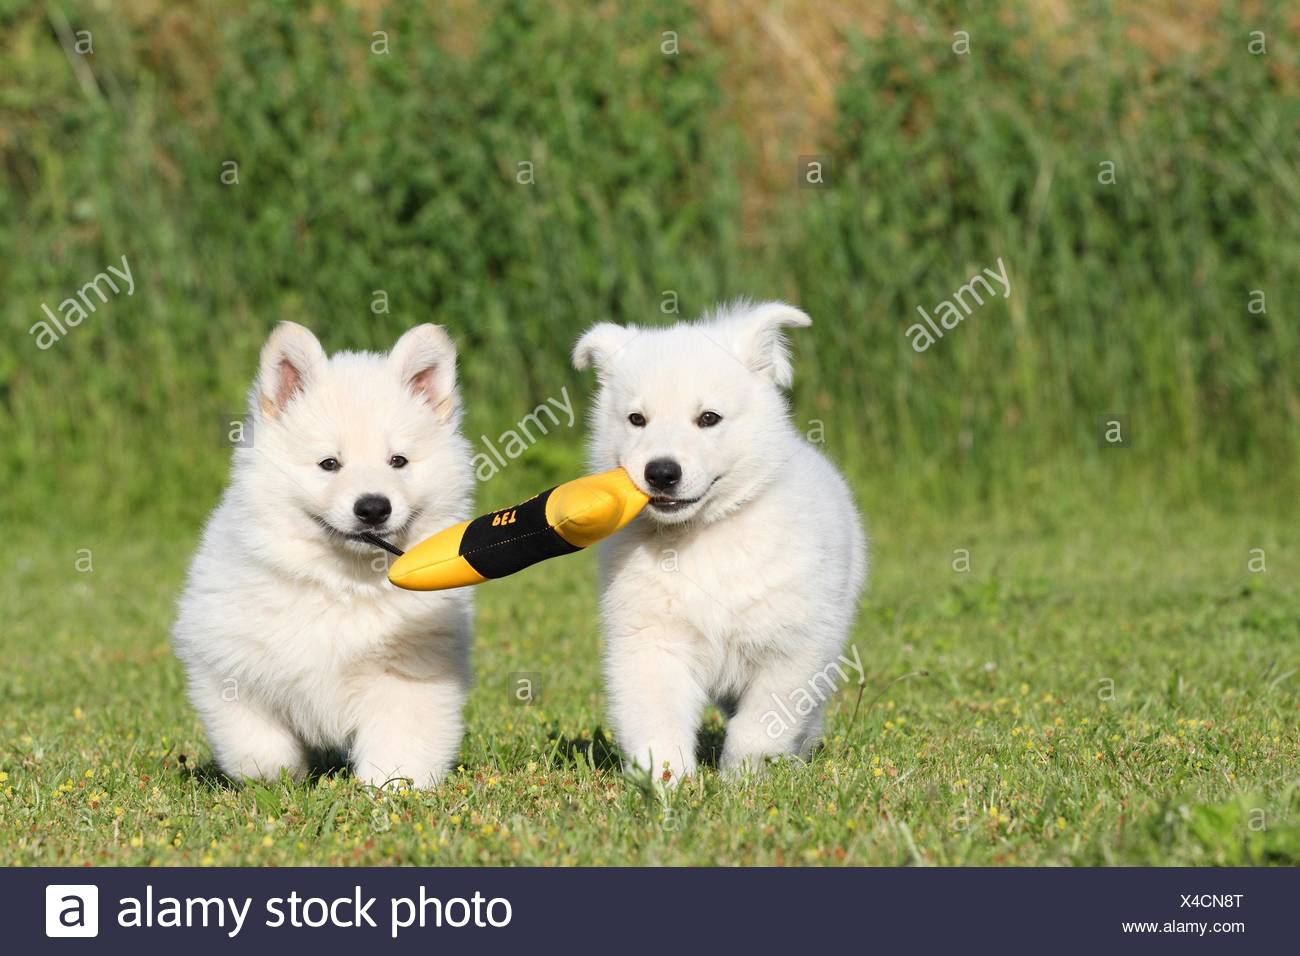 Berger Blanc Suisse Puppies Stock Photo 278104648 Alamy